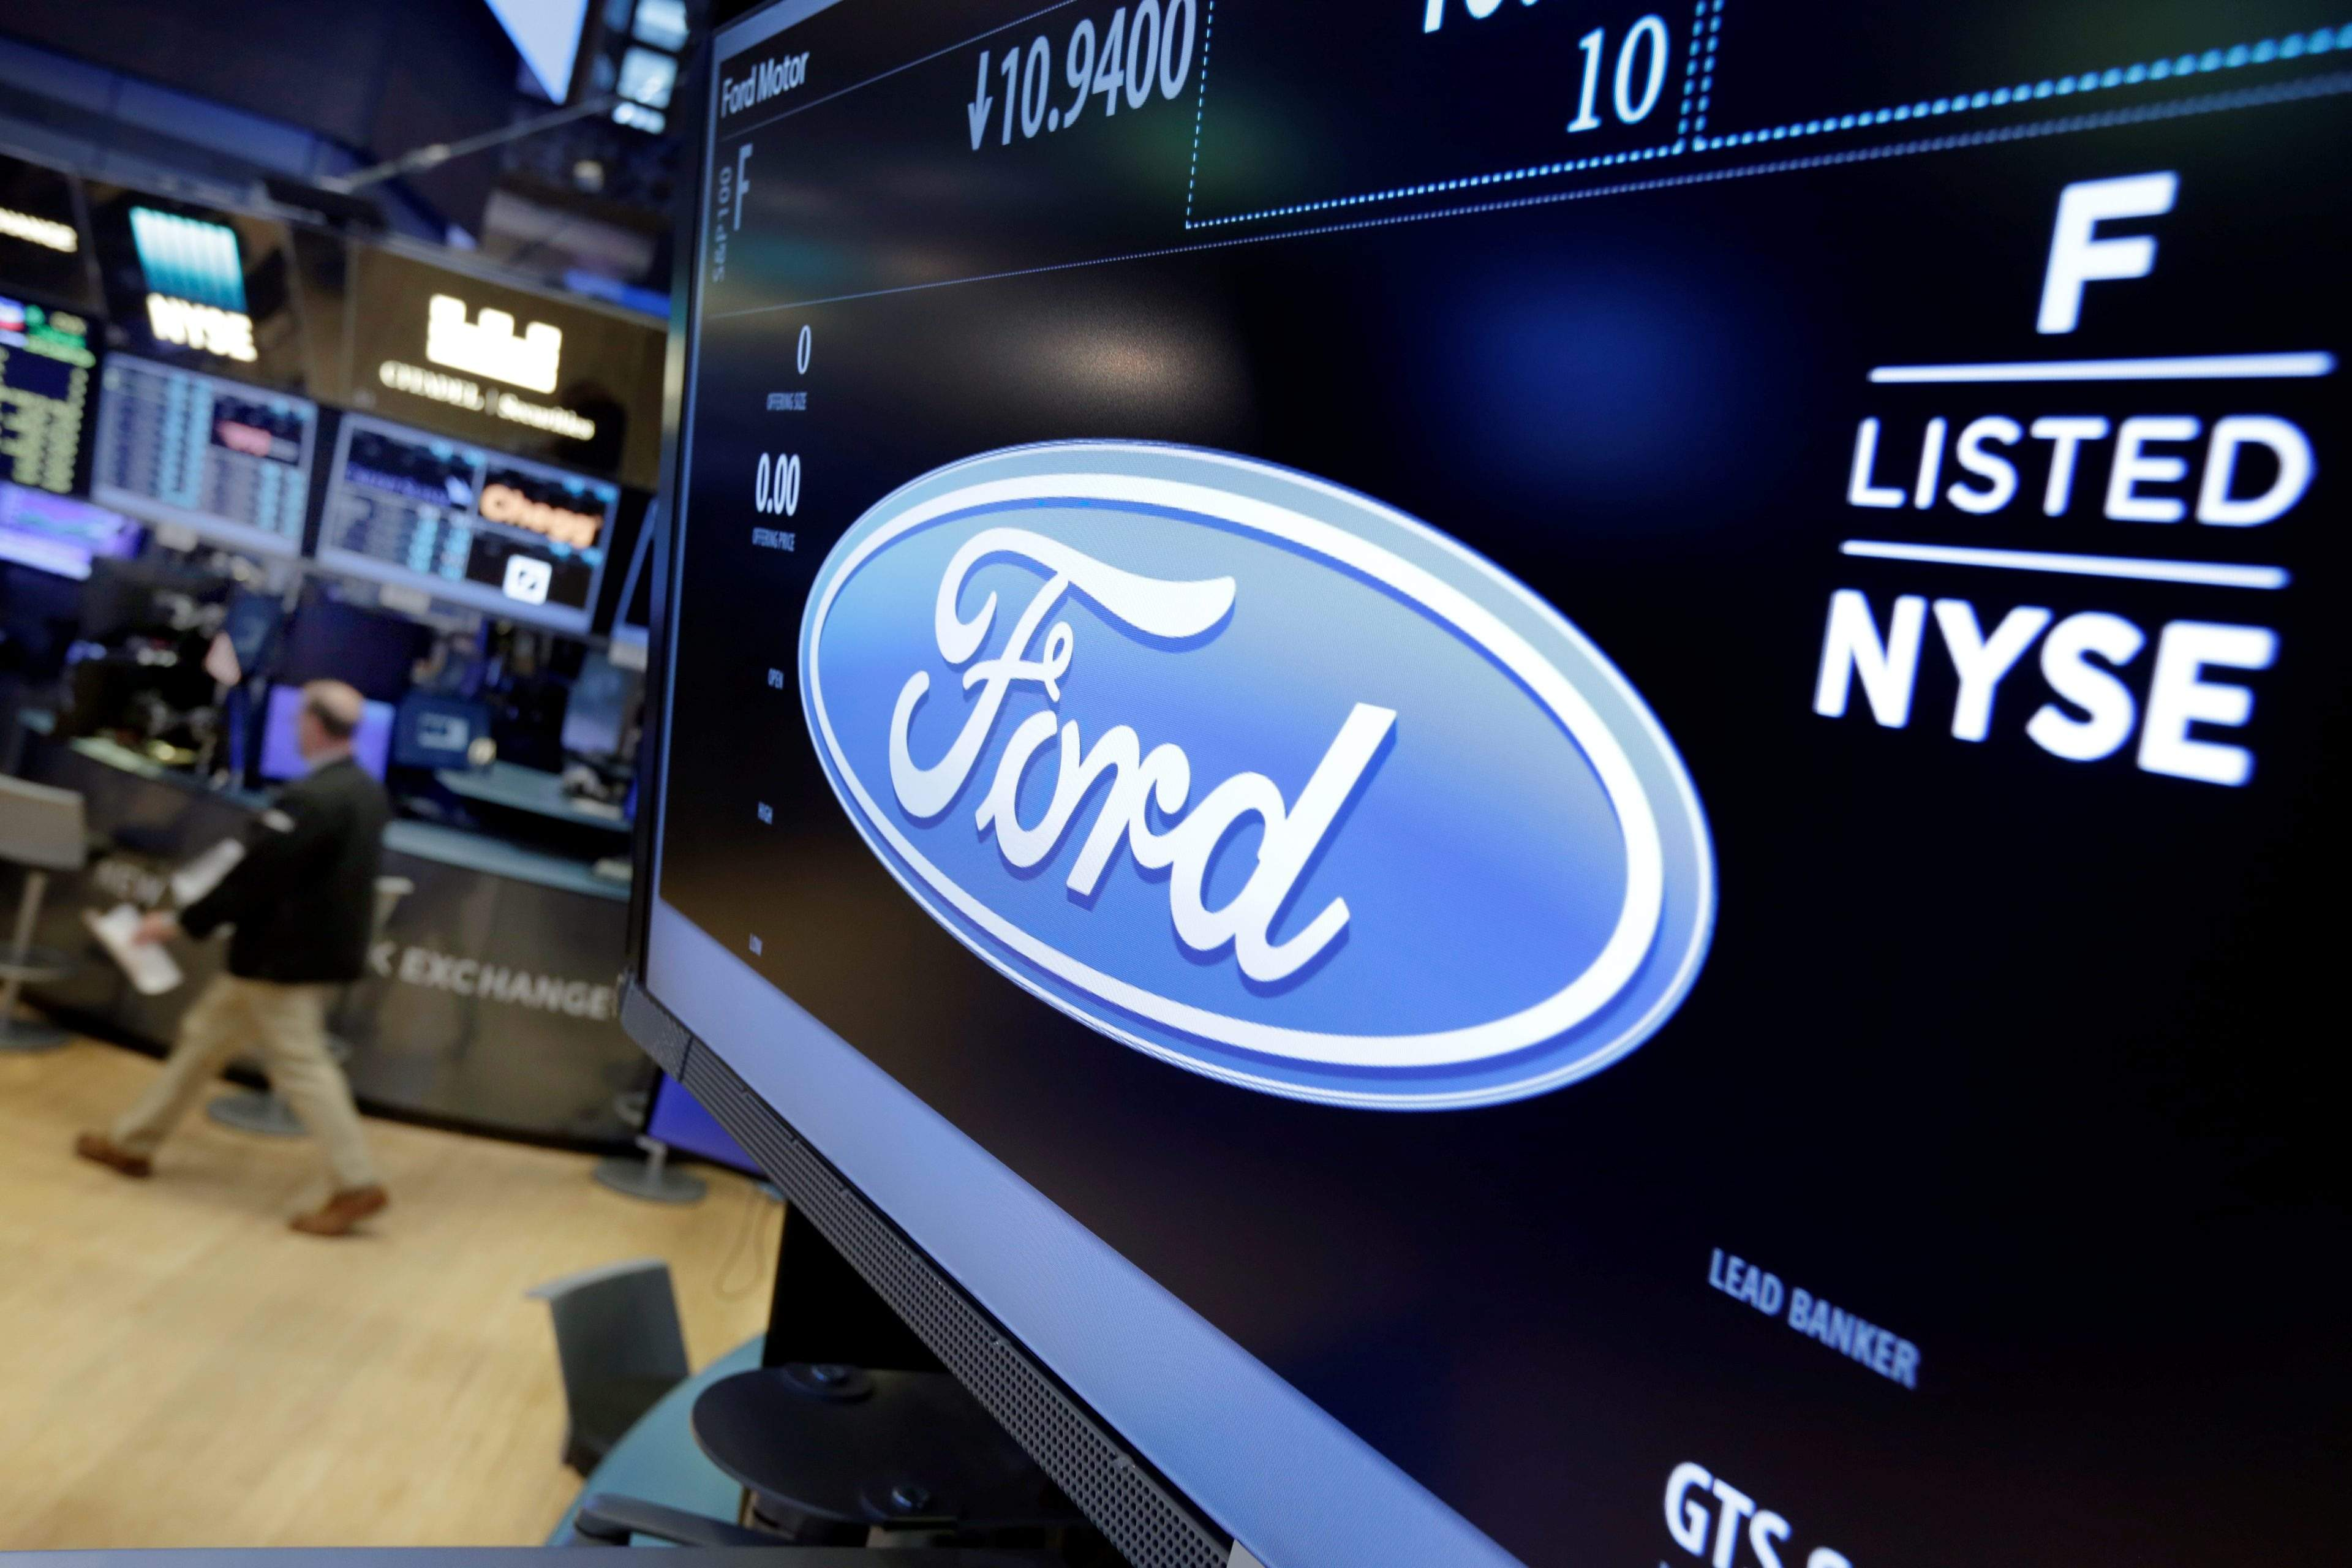 Ford motor co said wednesday it plans to cut 10 percent of its salaried jobs in north america and asia pacific this year in an effort to boost profits